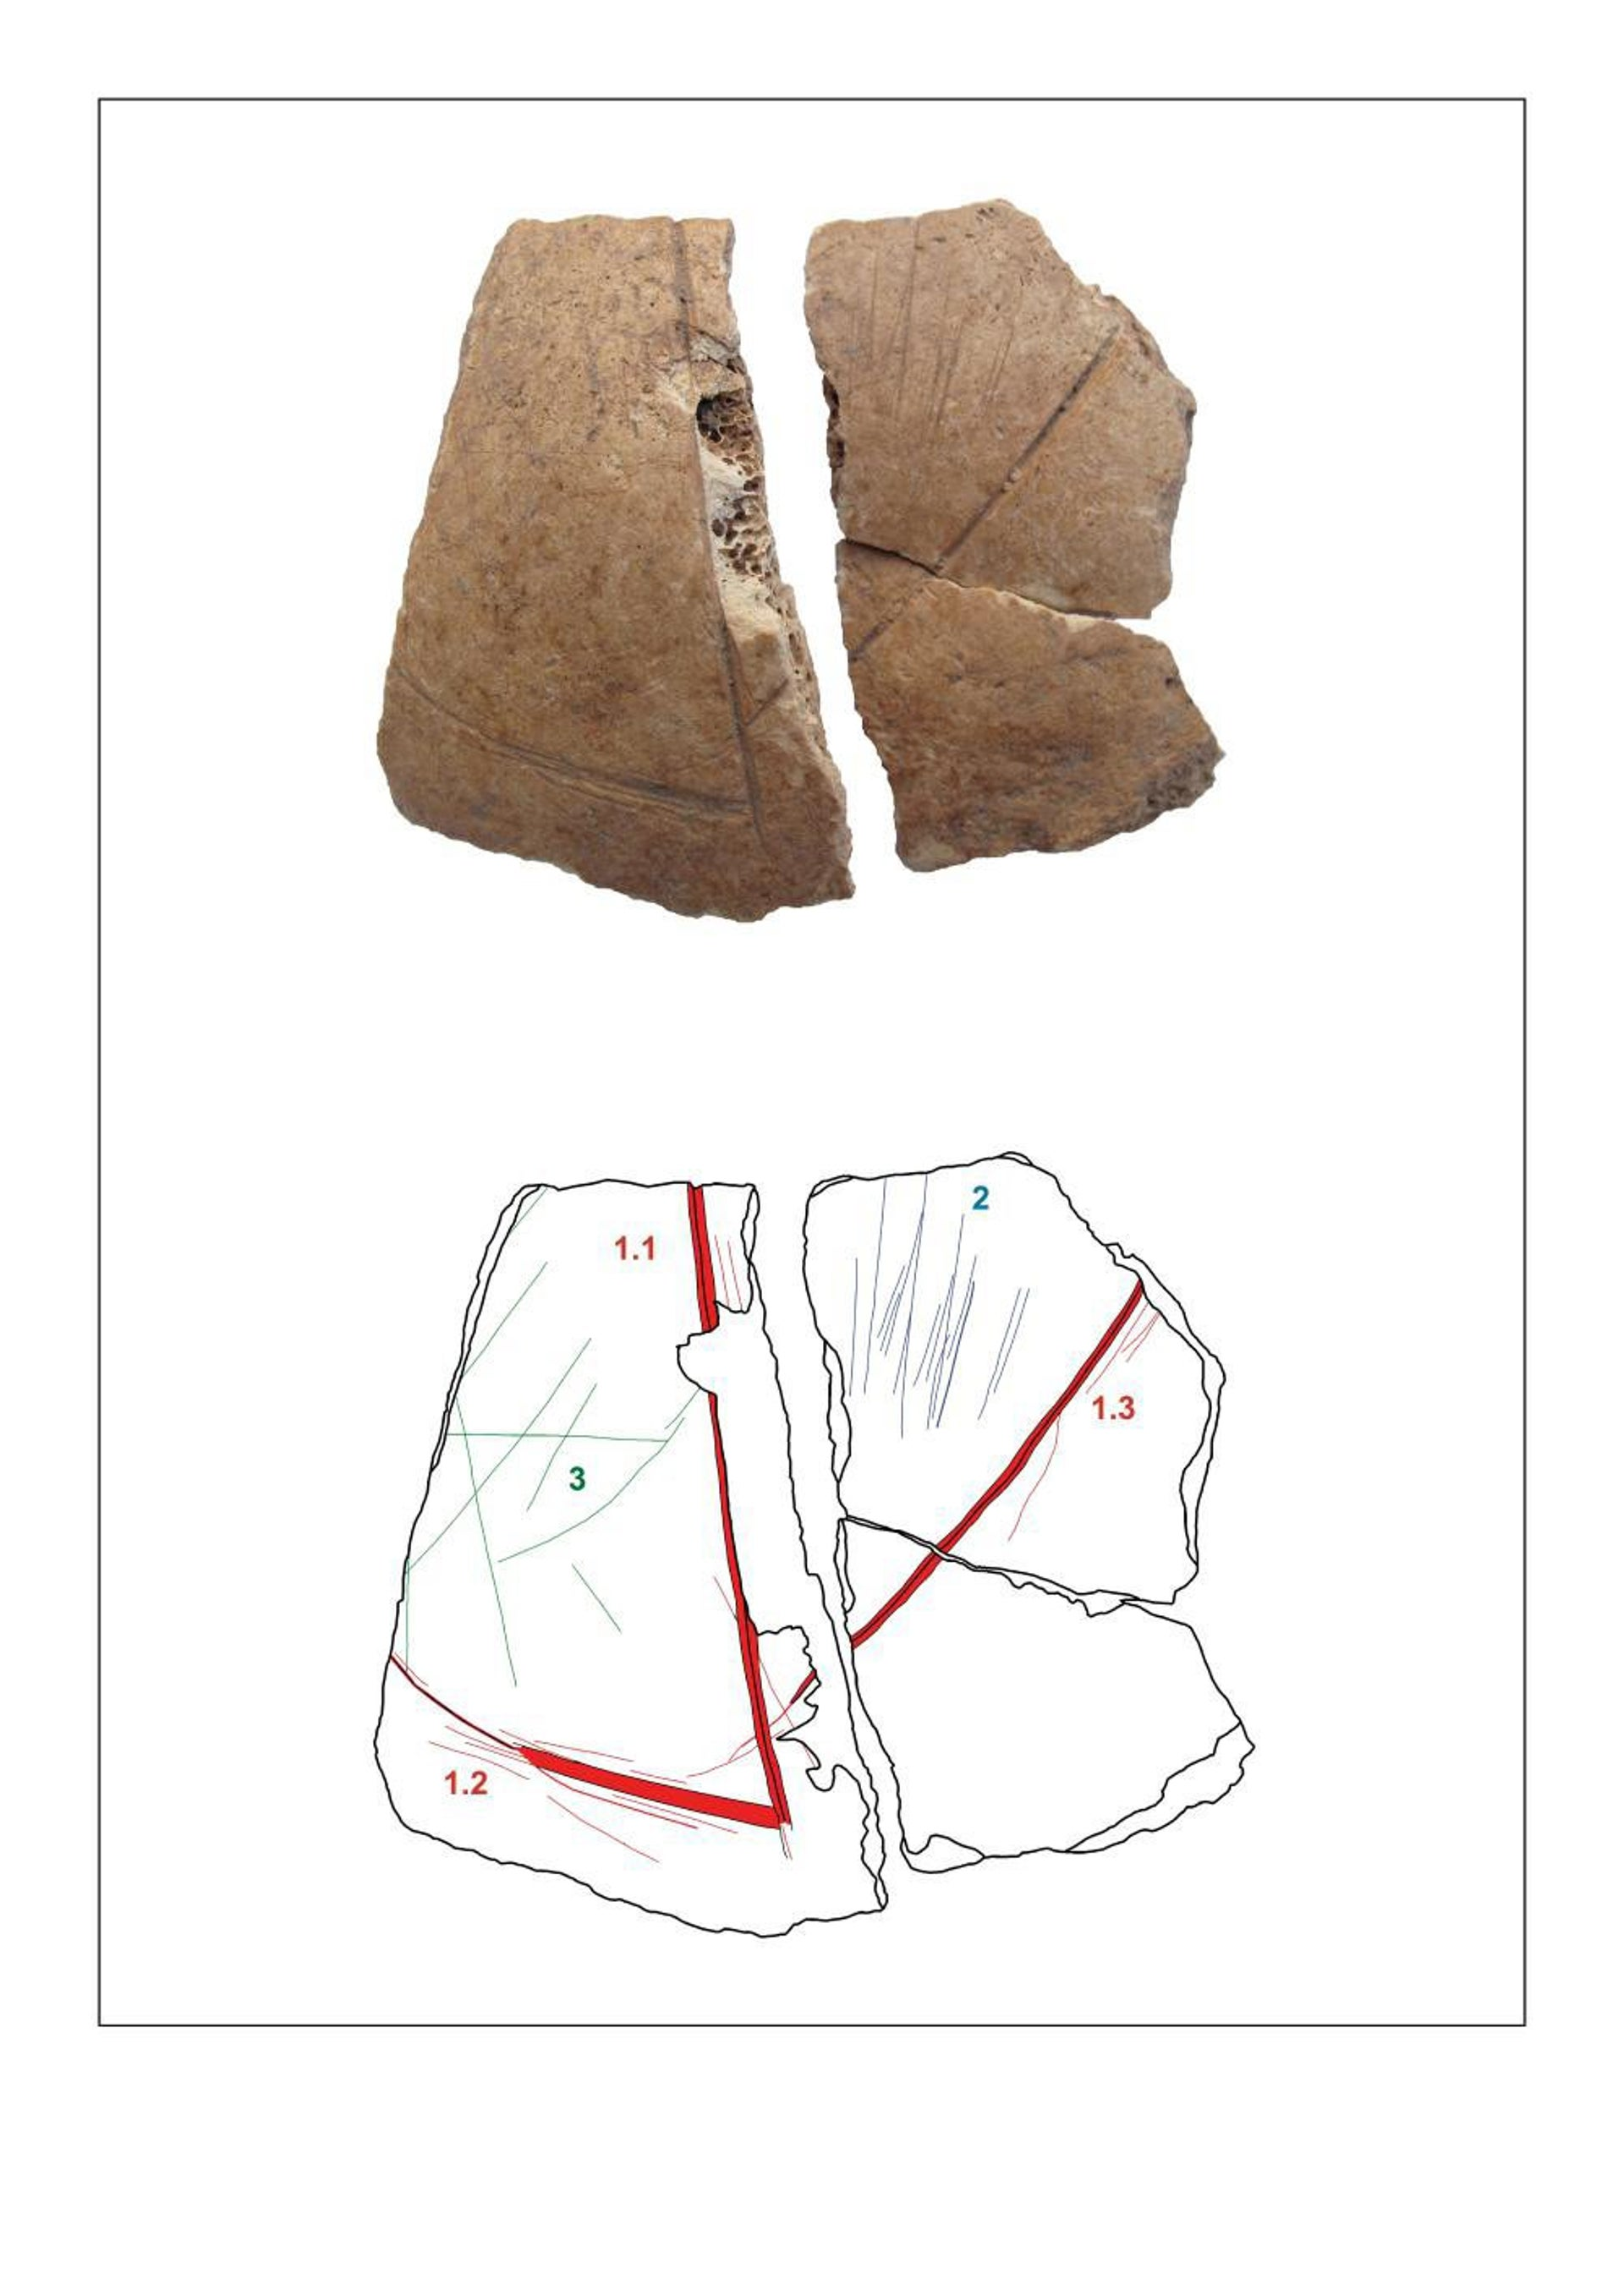 Frontal bone fragment of skull 3 with carvings (1) and cut marks (2,3).